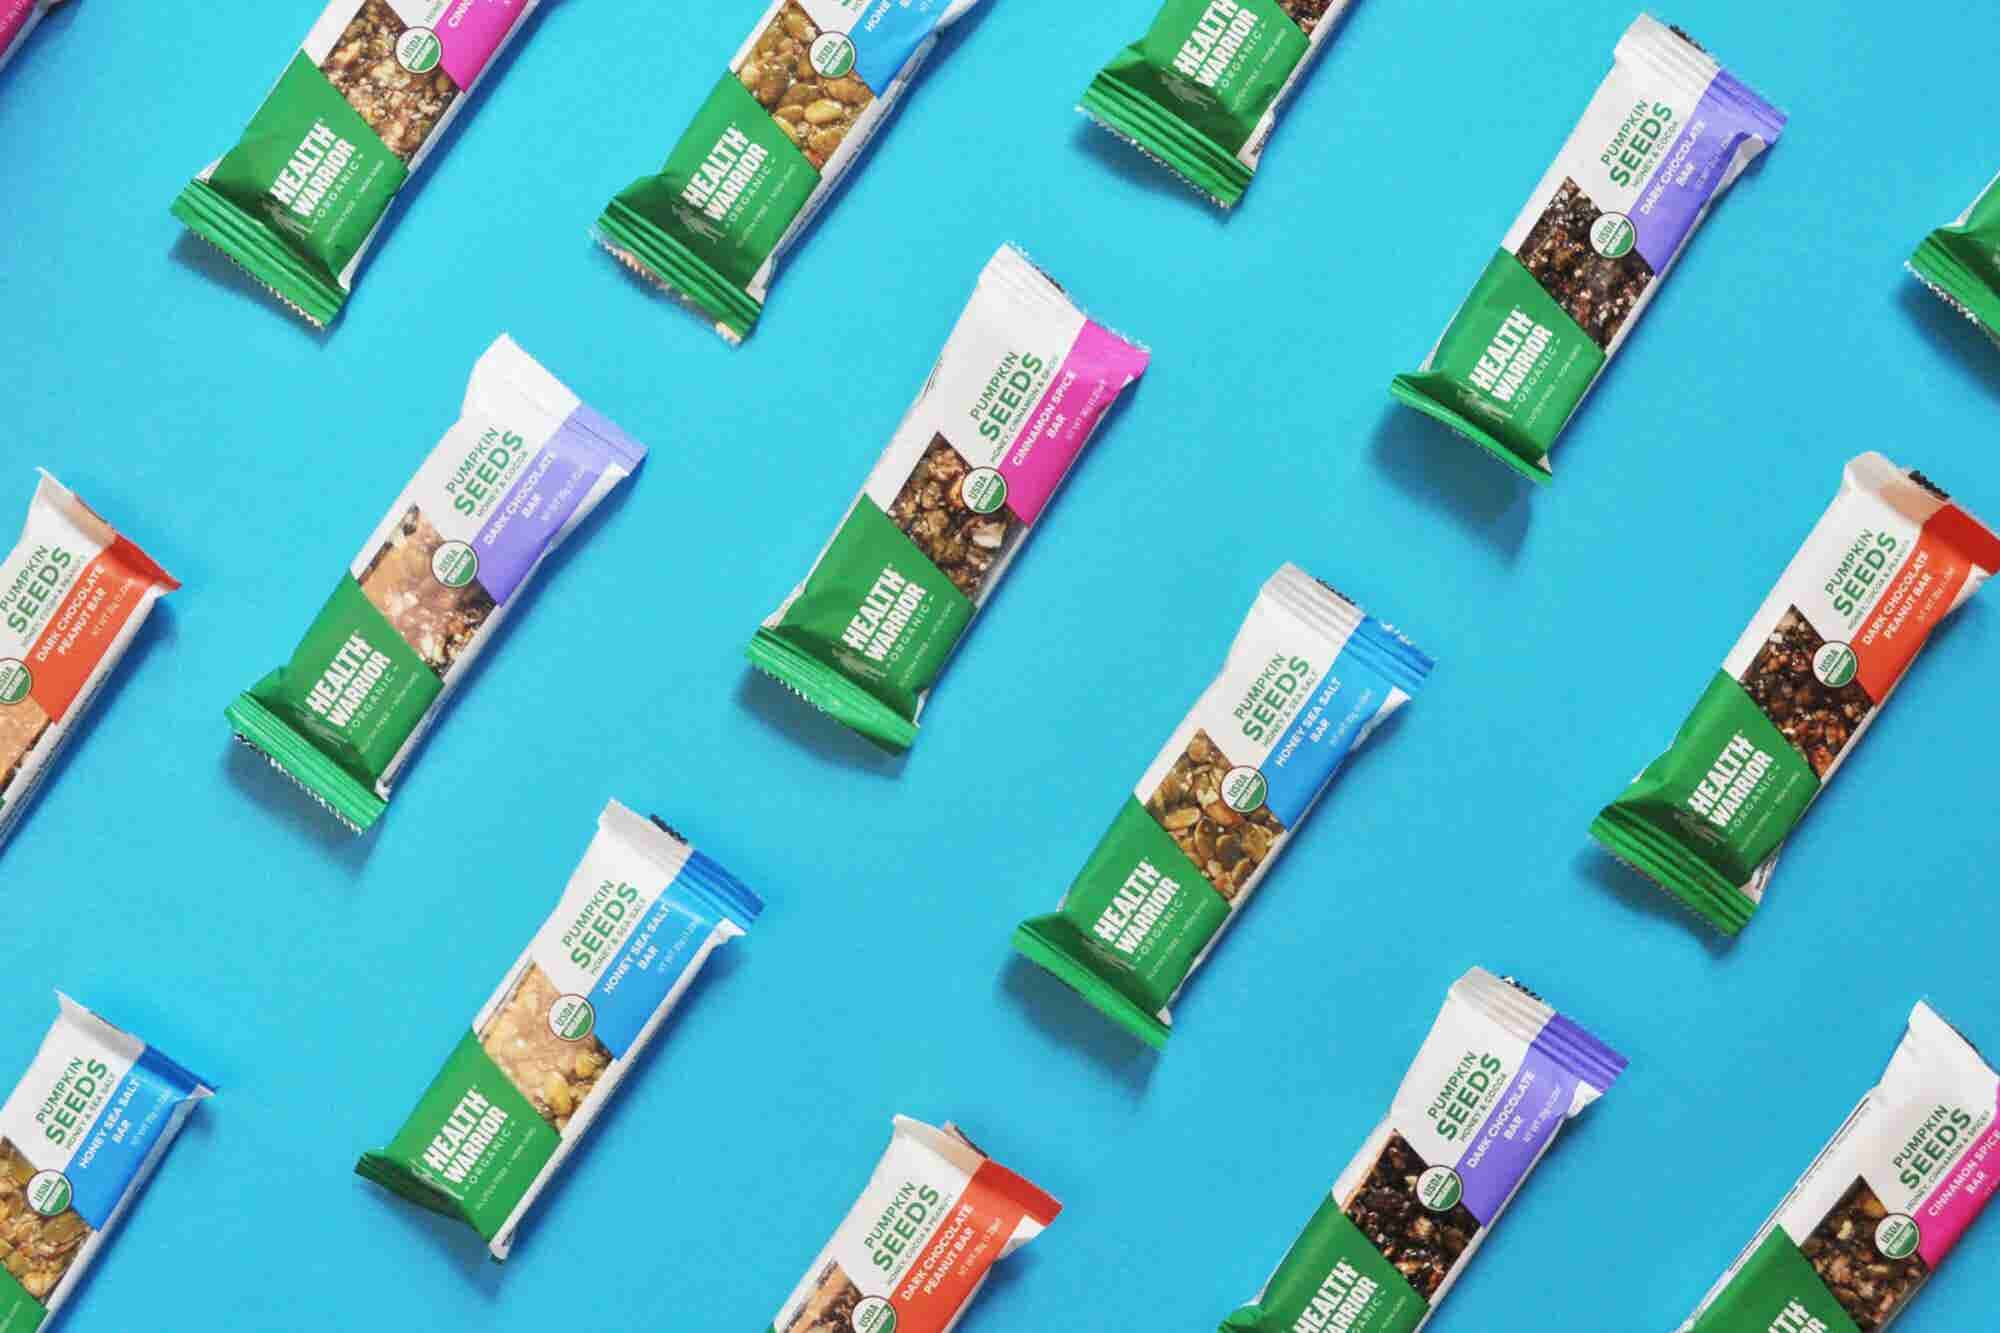 A Quick Oral History of Health Warrior, the $10 Million-Plus Snack Company That Was Acquired by PepsiCo